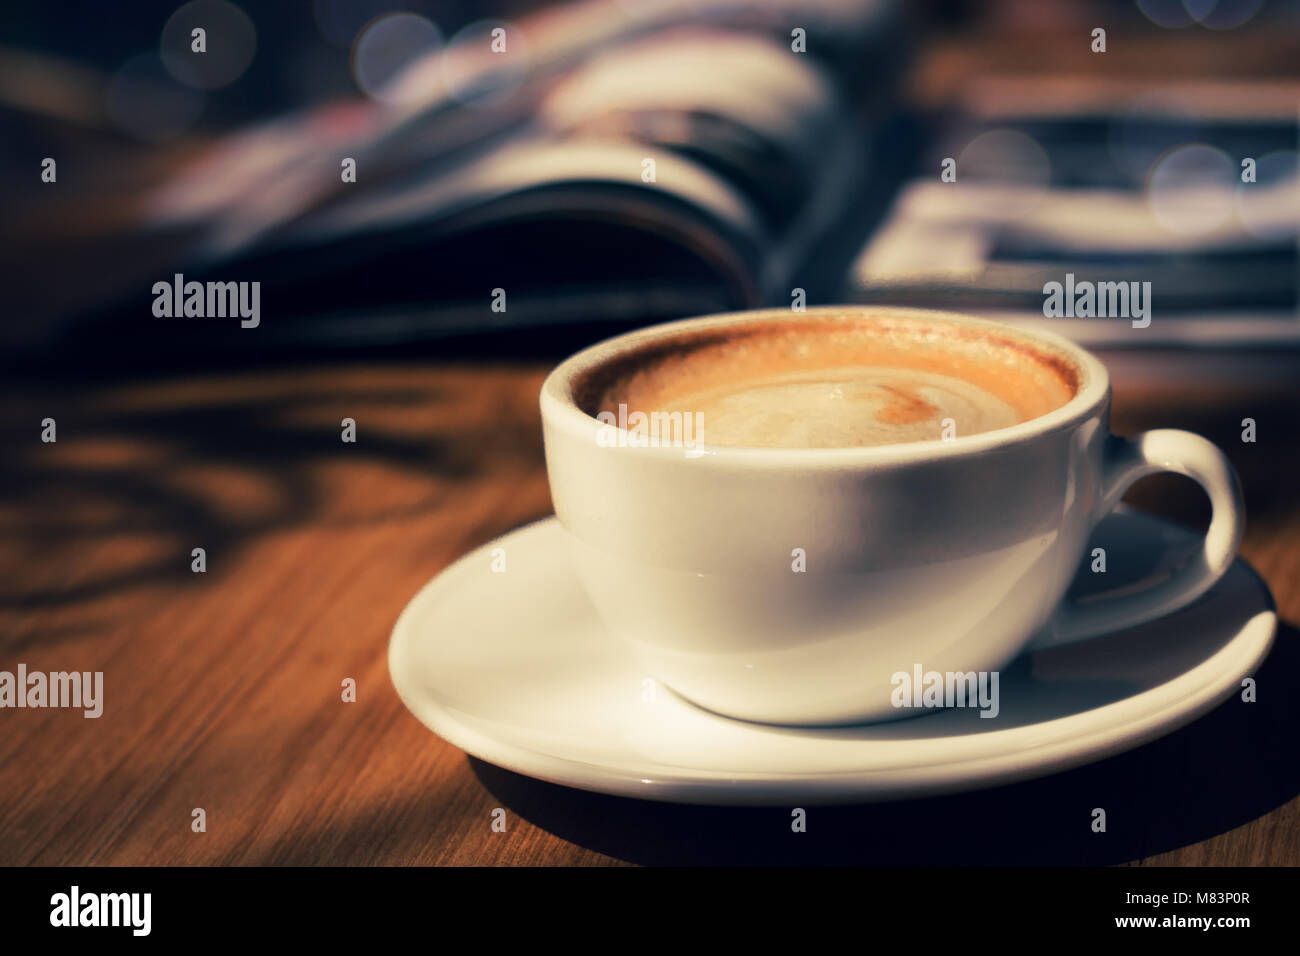 cup of coffee in cafee in dark tone and vintage - Stock Image